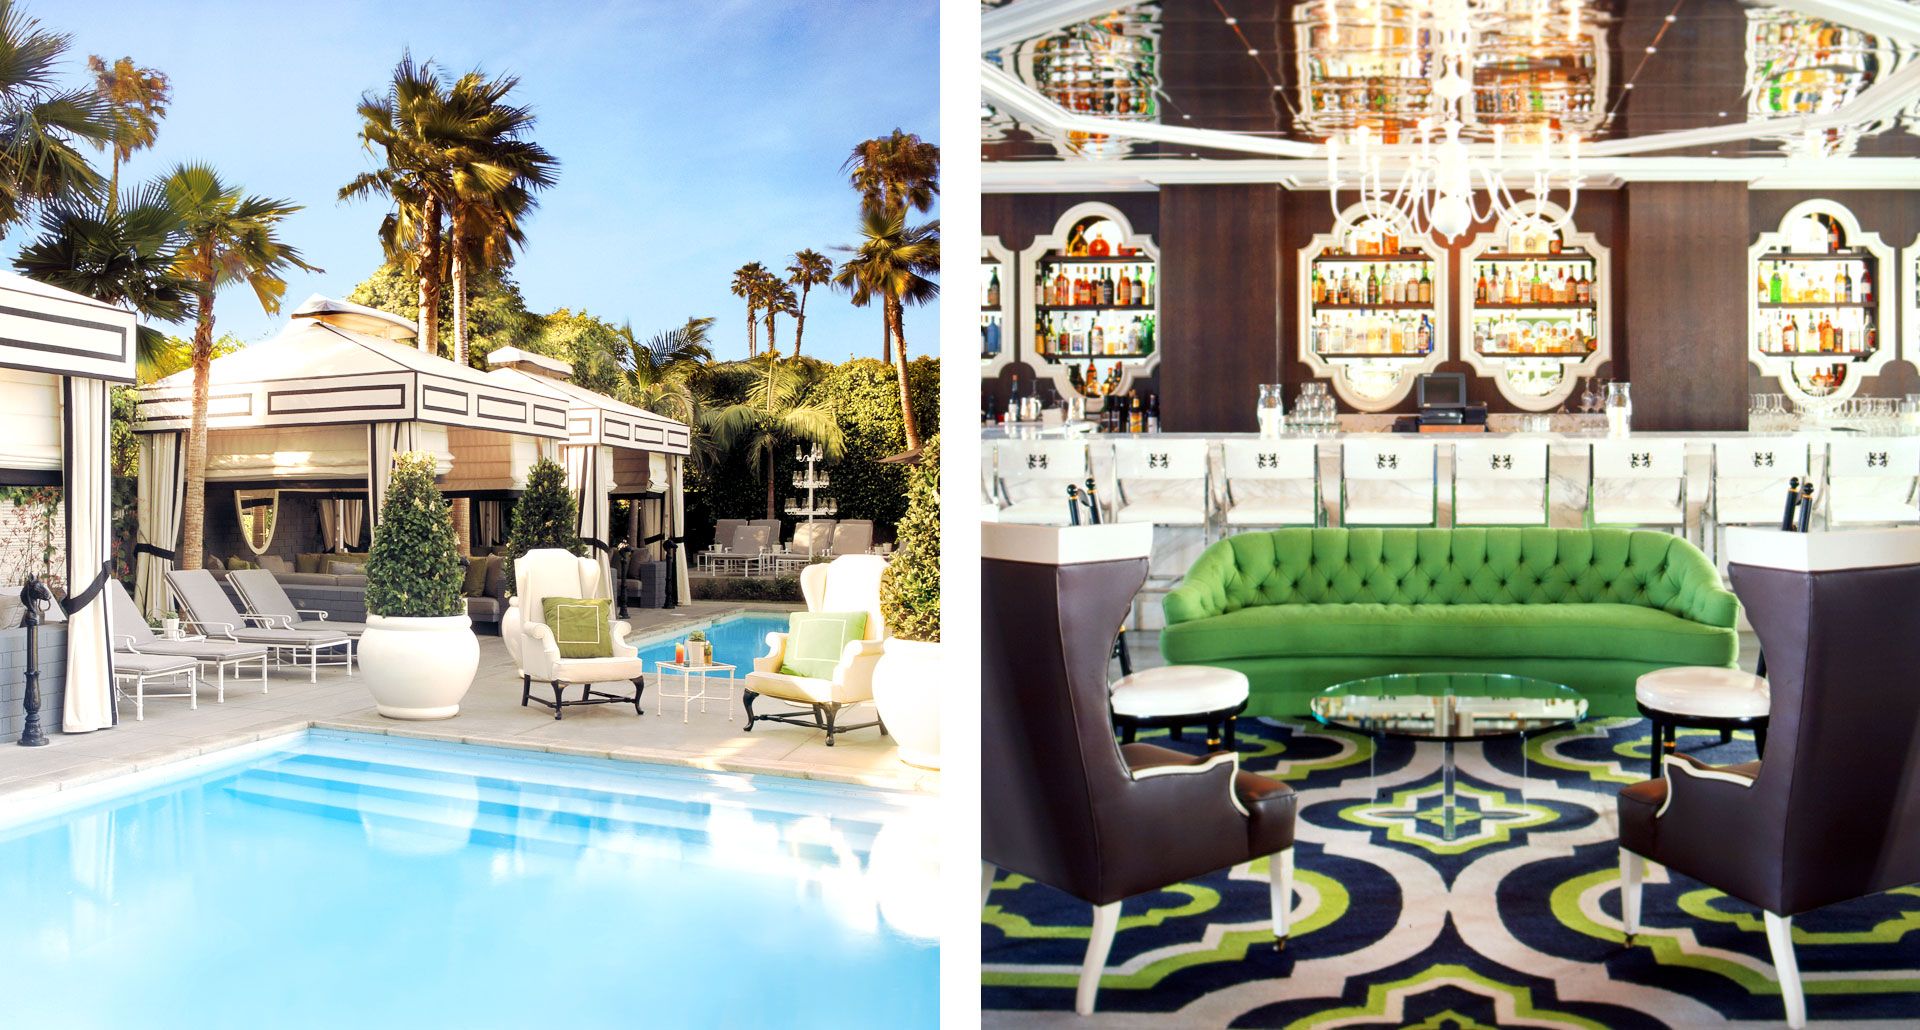 Los Angeles boutique hotel - Viceroy Santa Monica